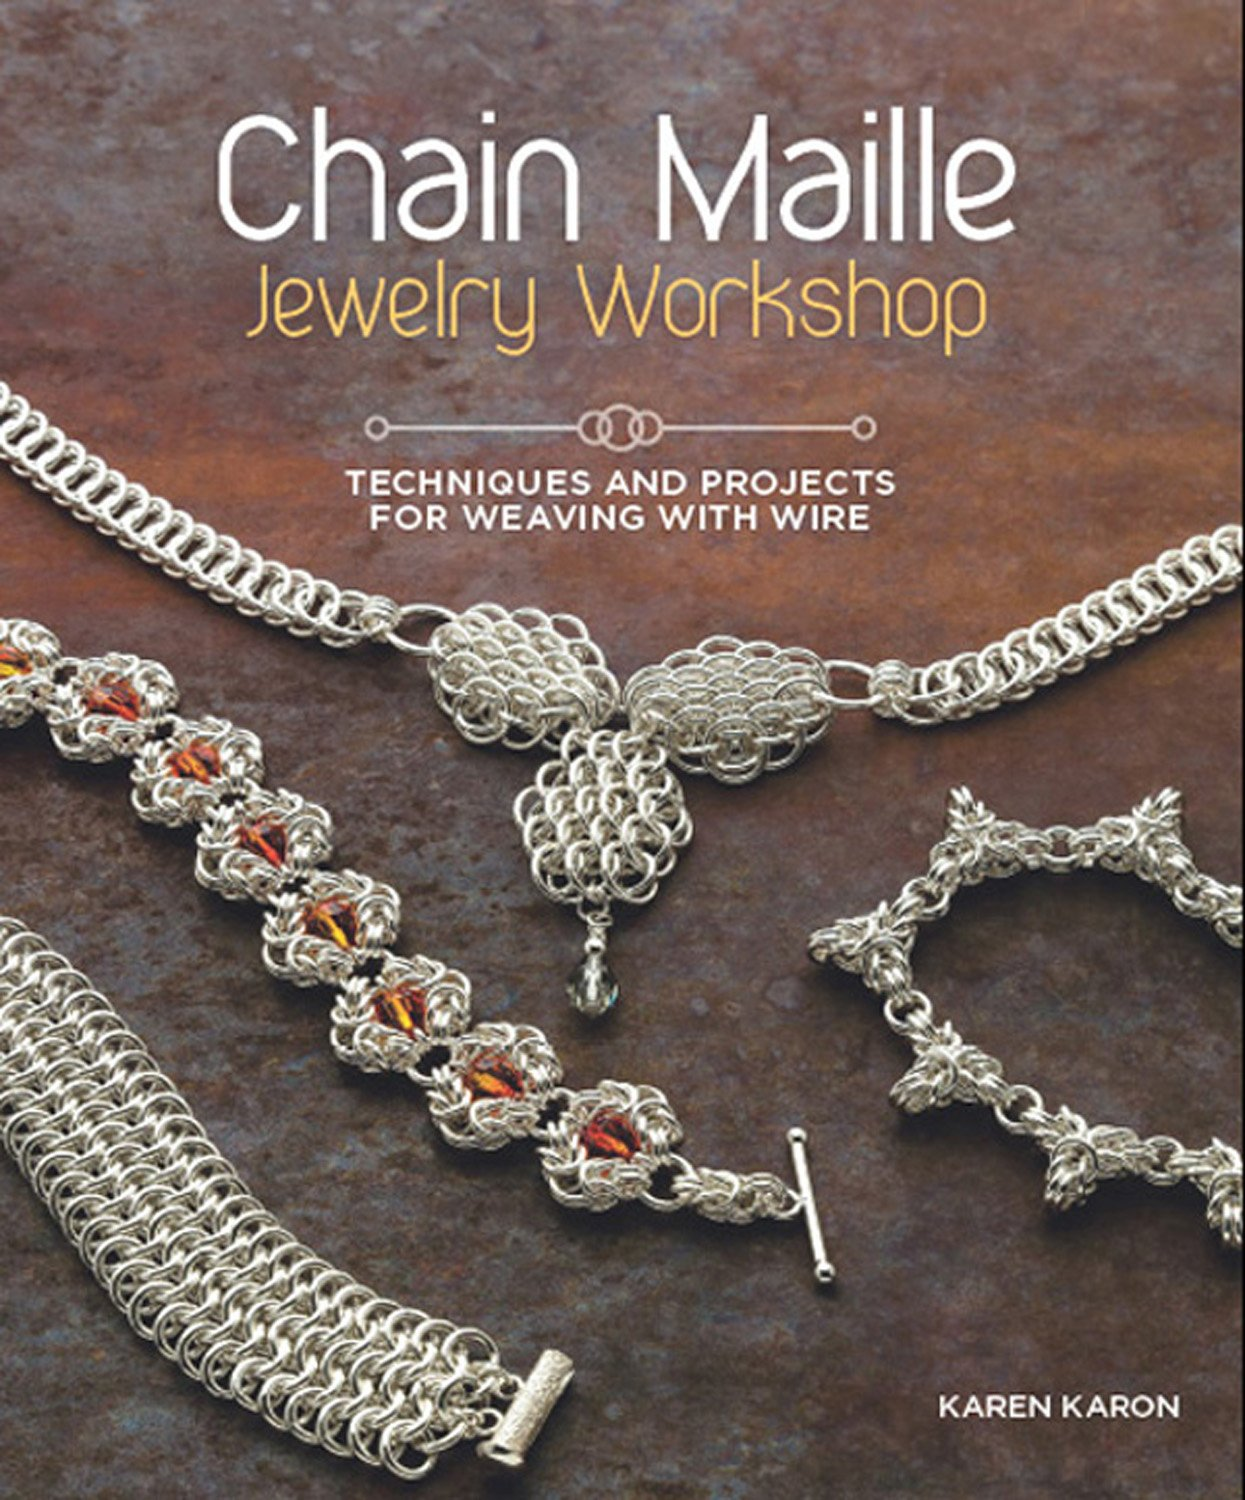 Chain Maille Jewelry Workshop: Techniques and Projects for Weaving with Wire Paperback – August 14, 2012 Karen Karon Interweave 1596686456 Jewelry making